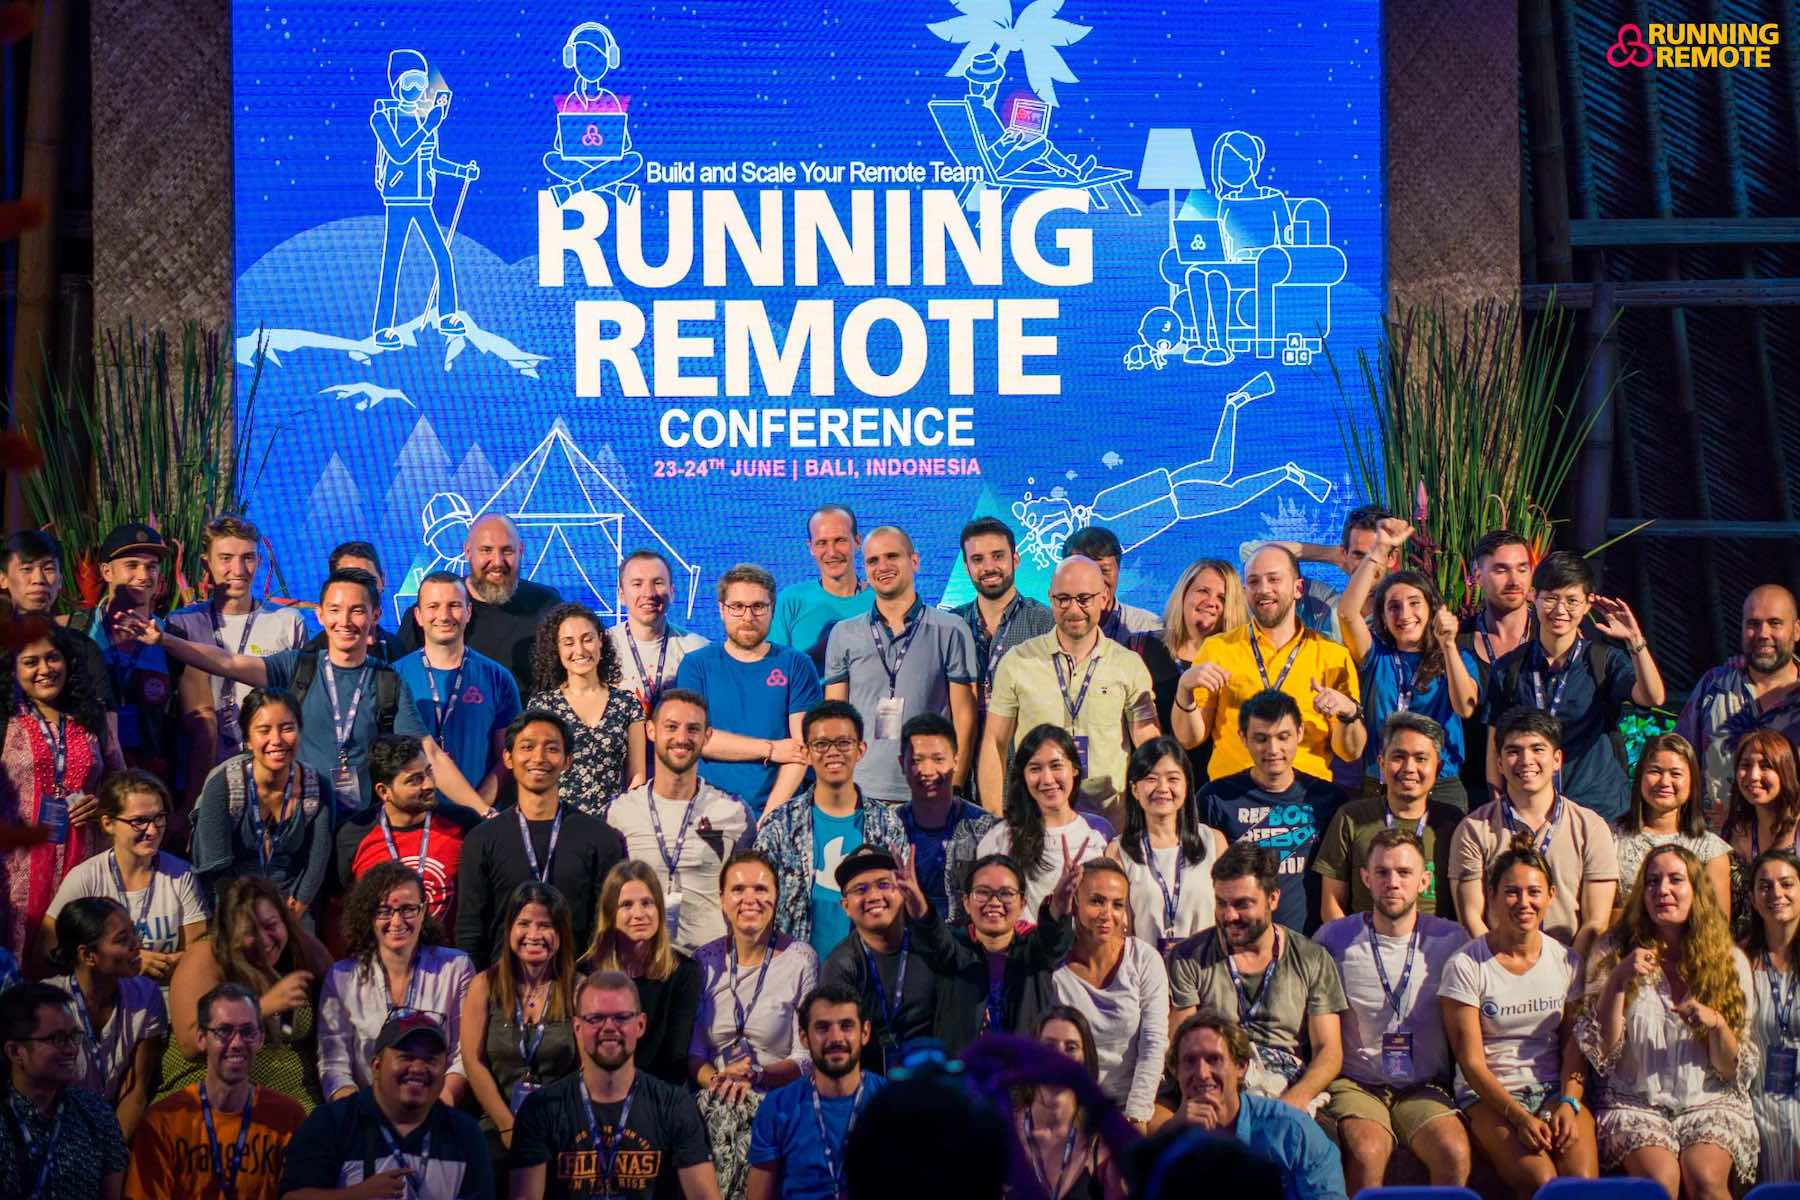 Iglu Sponsors Running Remote 2019 in Bali